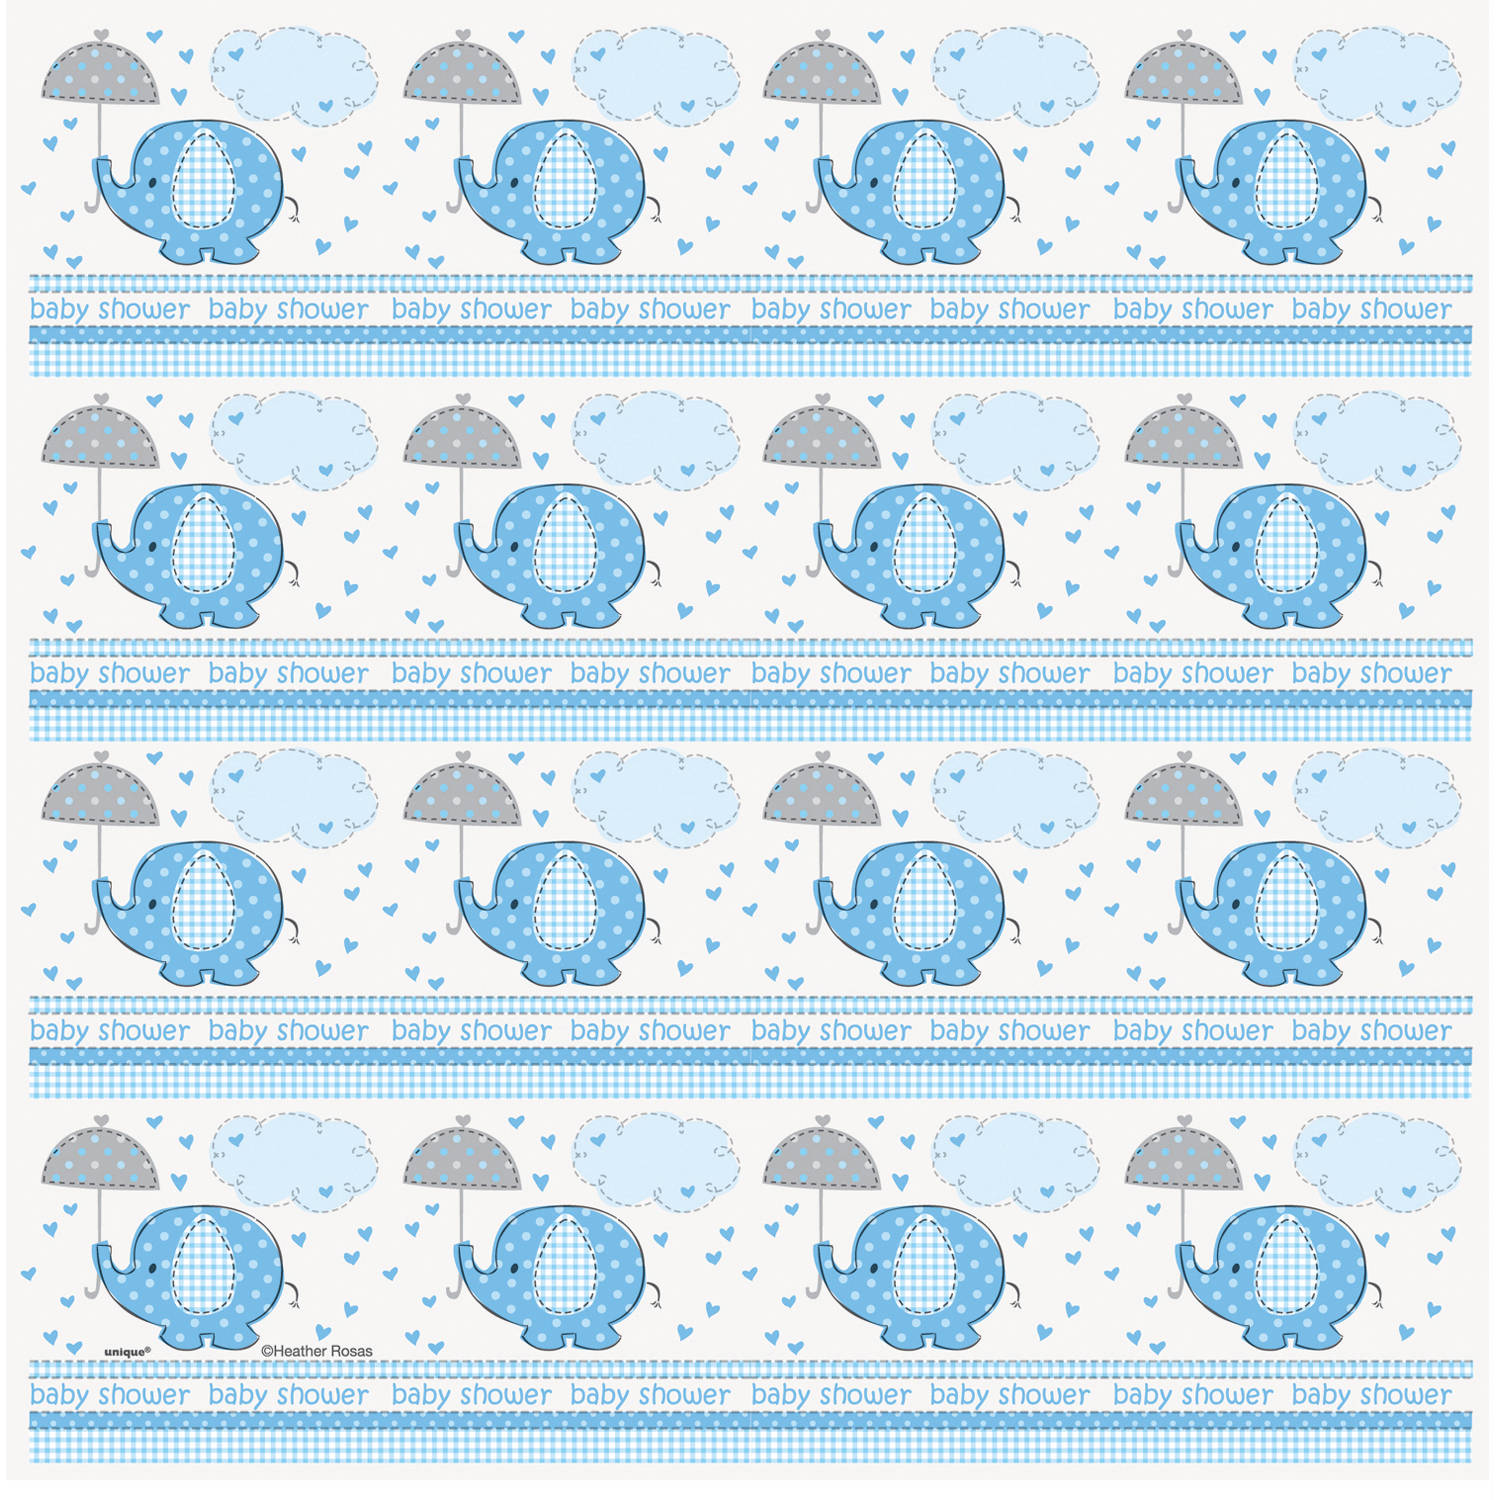 Elephant Baby Shower Wrapping Paper, 5 X 2.5 Ft, Blue, 1ct